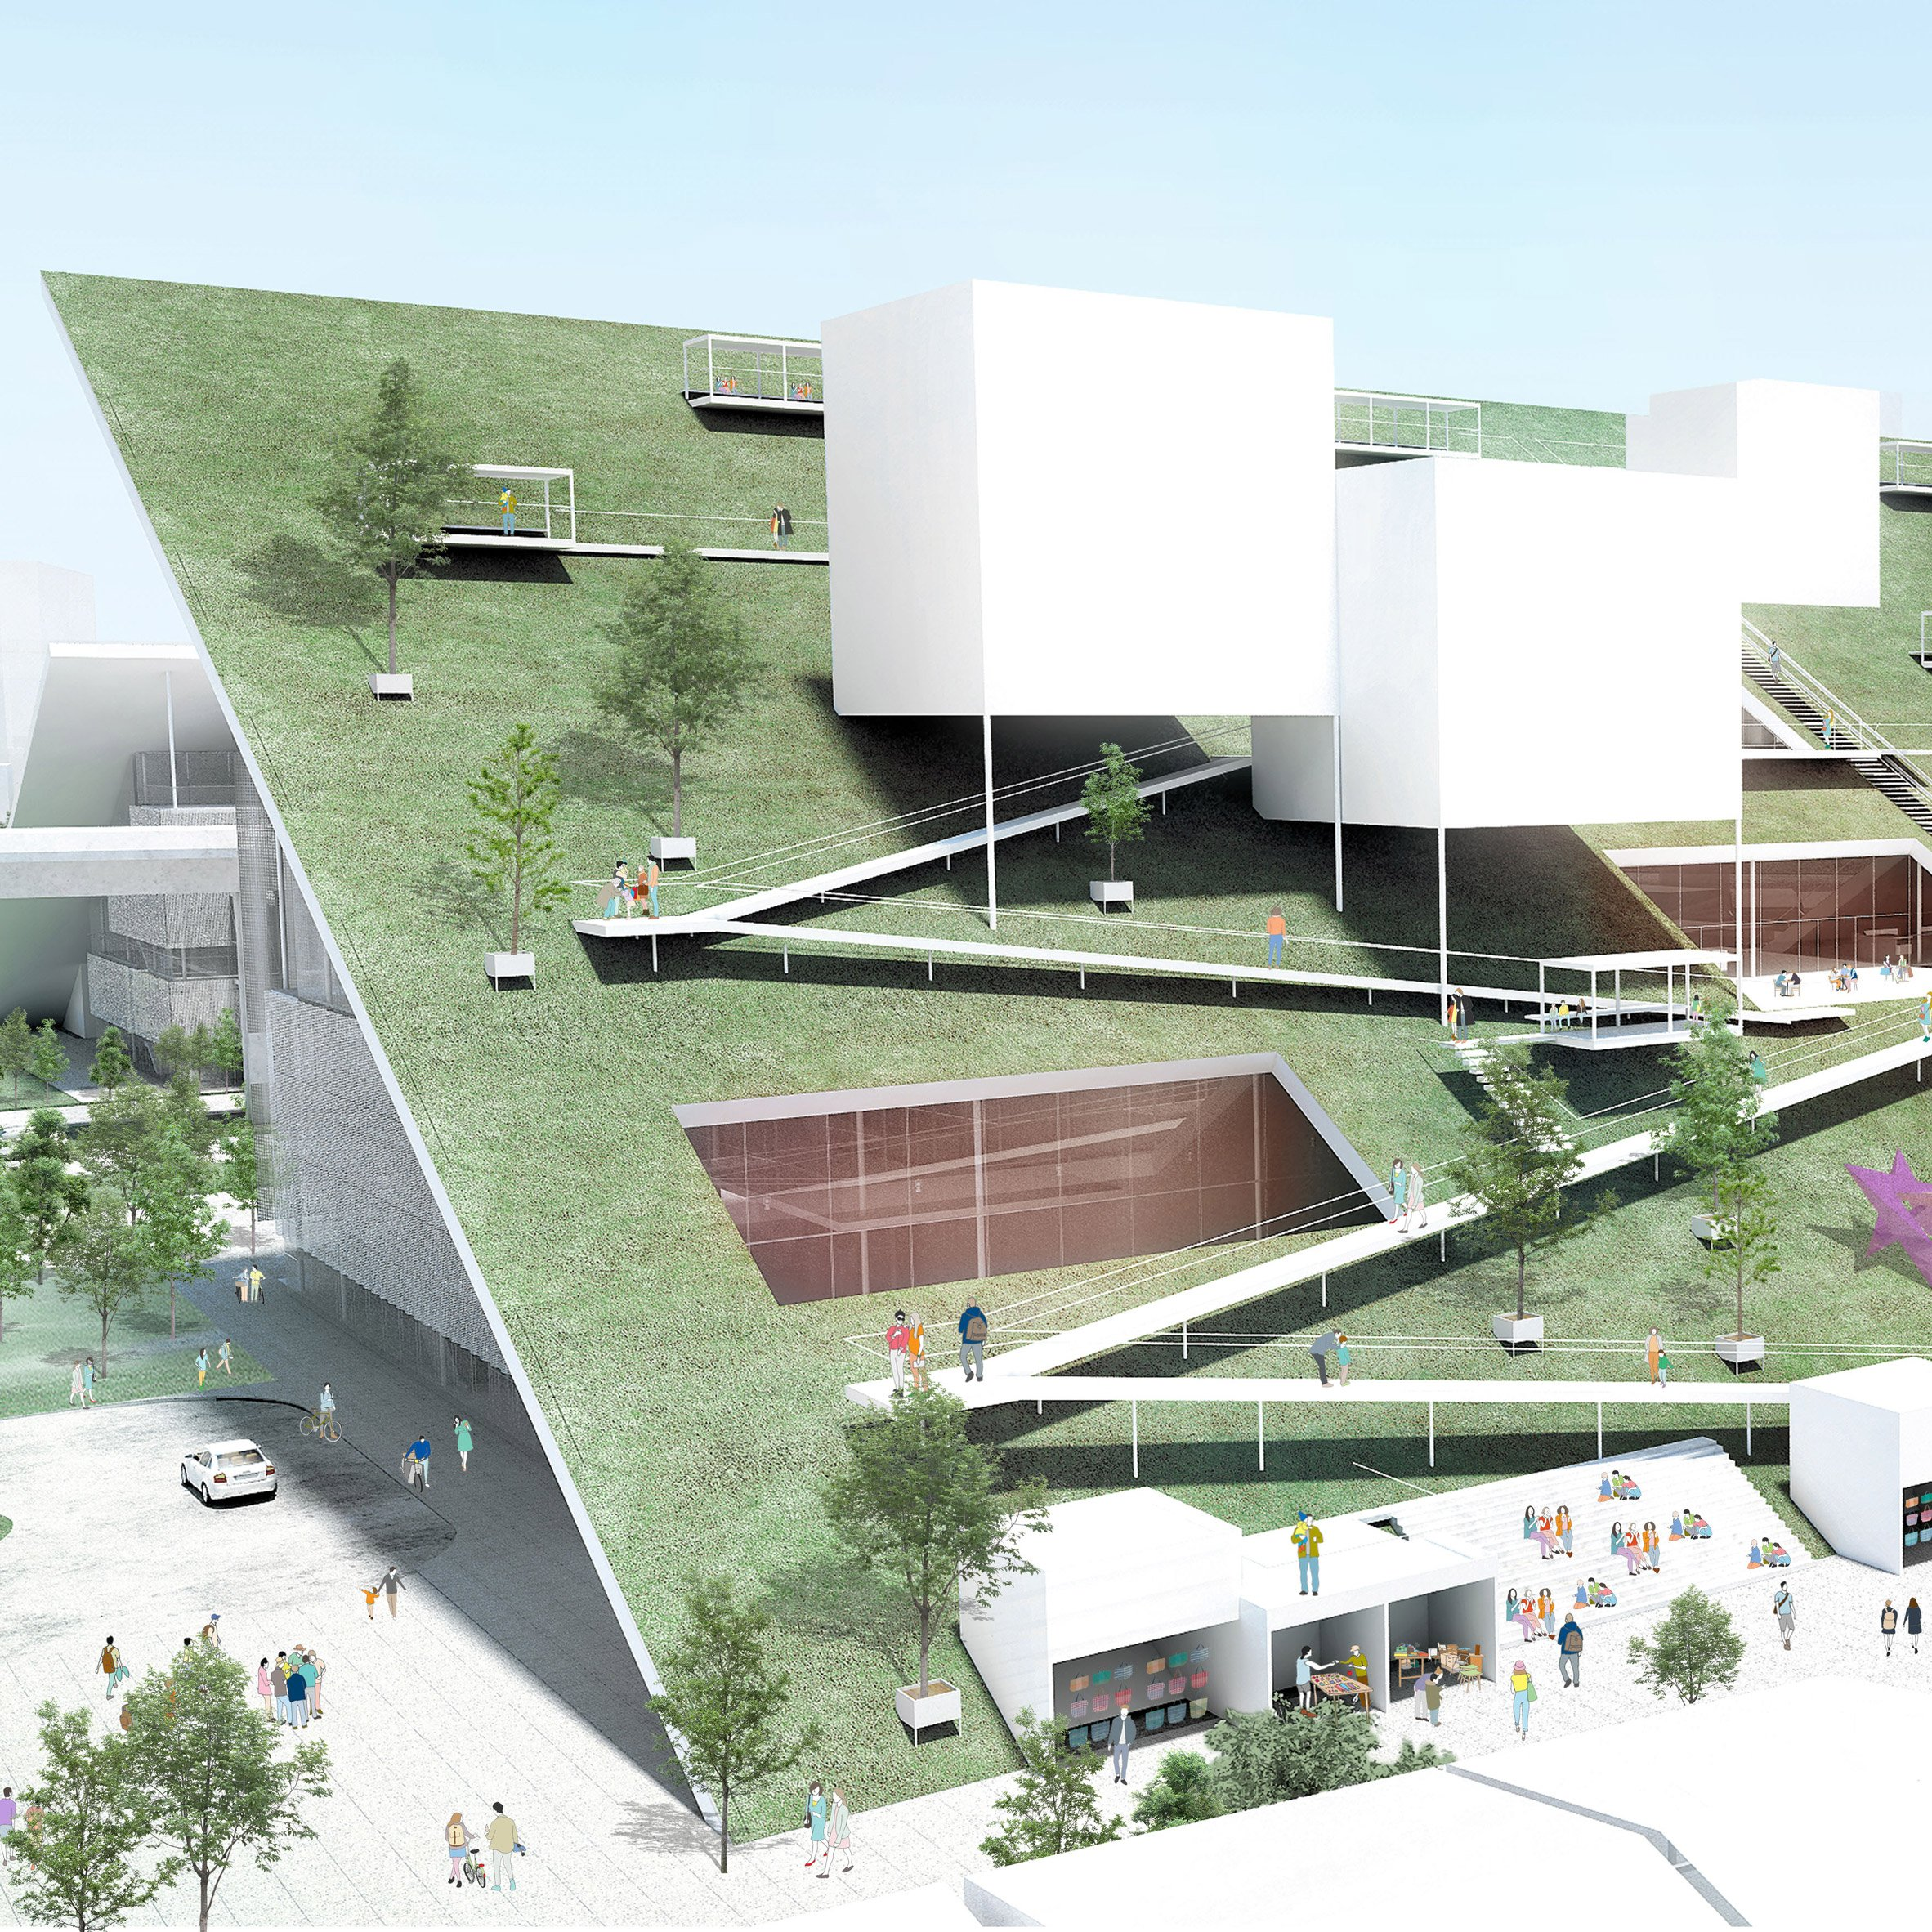 Winning Design For Taiwan Art Museum Features Sloped Green Roofs